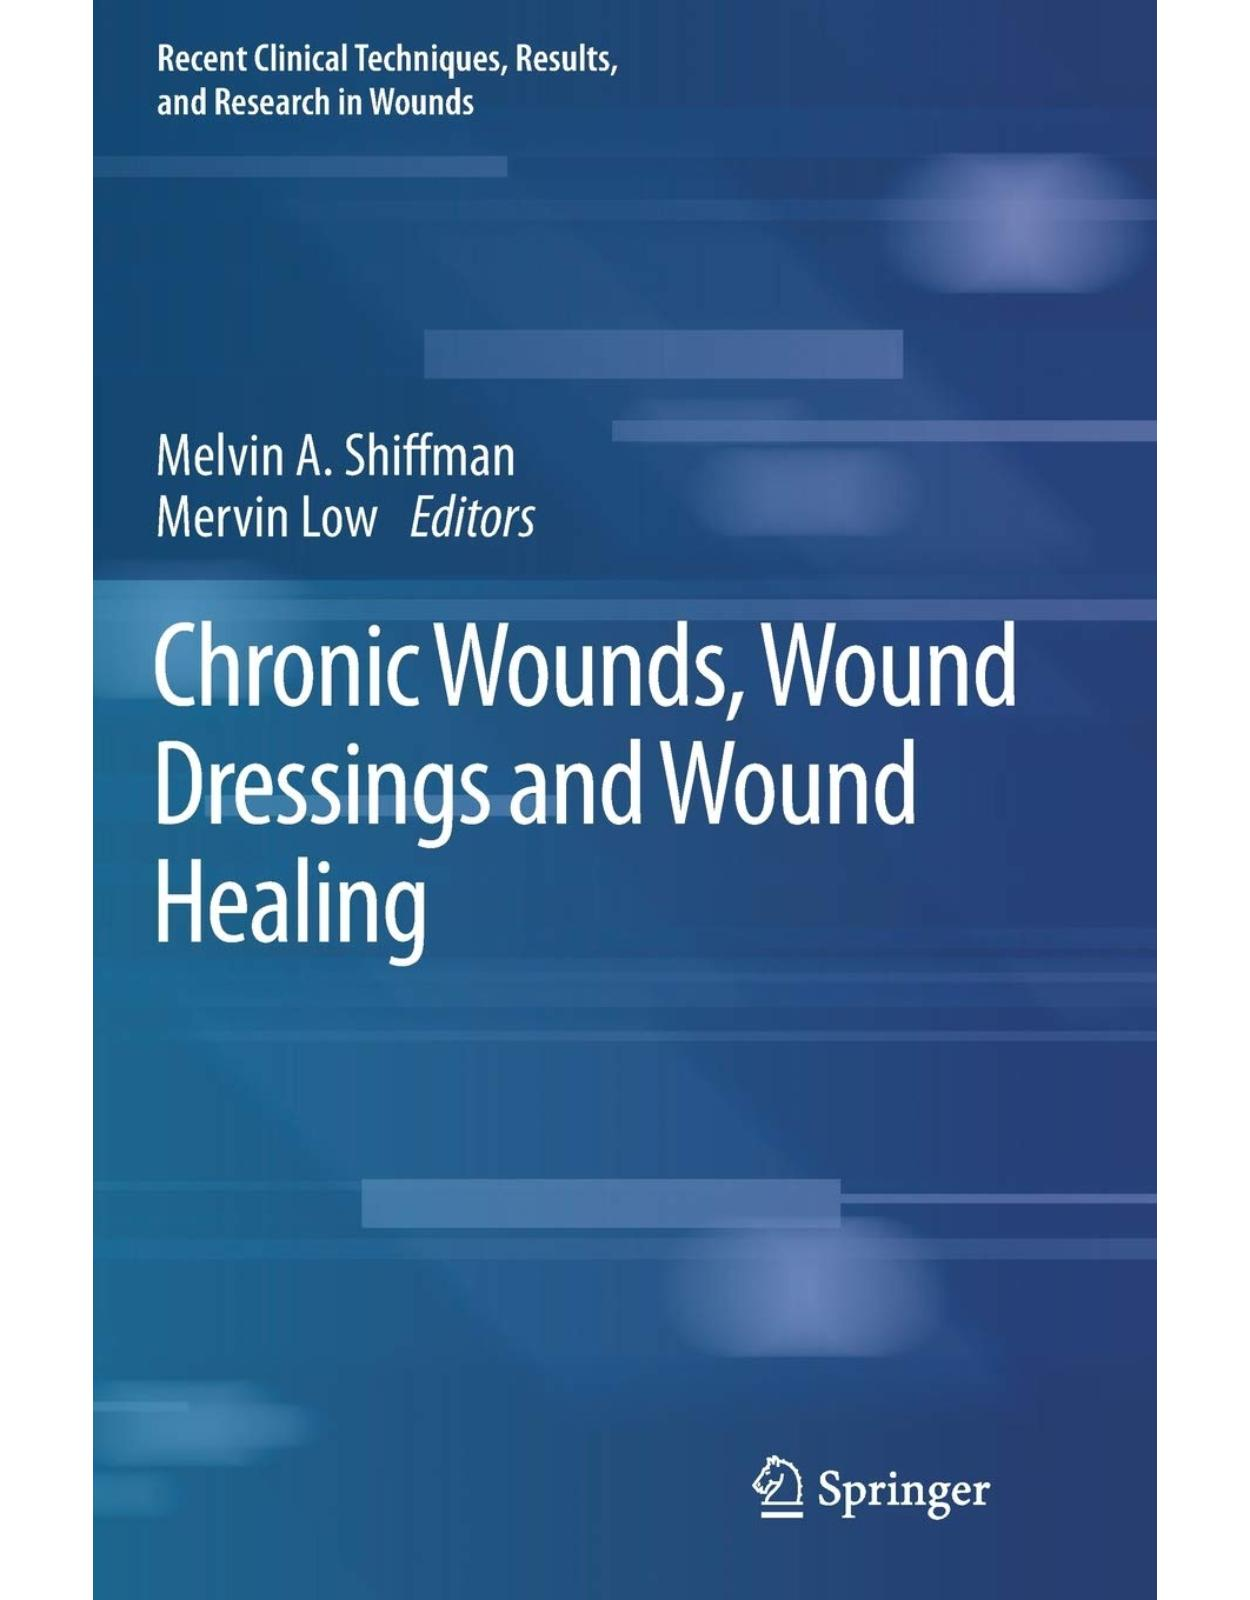 Chronic Wounds, Wound Dressings and Wound Healing: 6 (Recent Clinical Techniques, Results, and Research in Wounds)